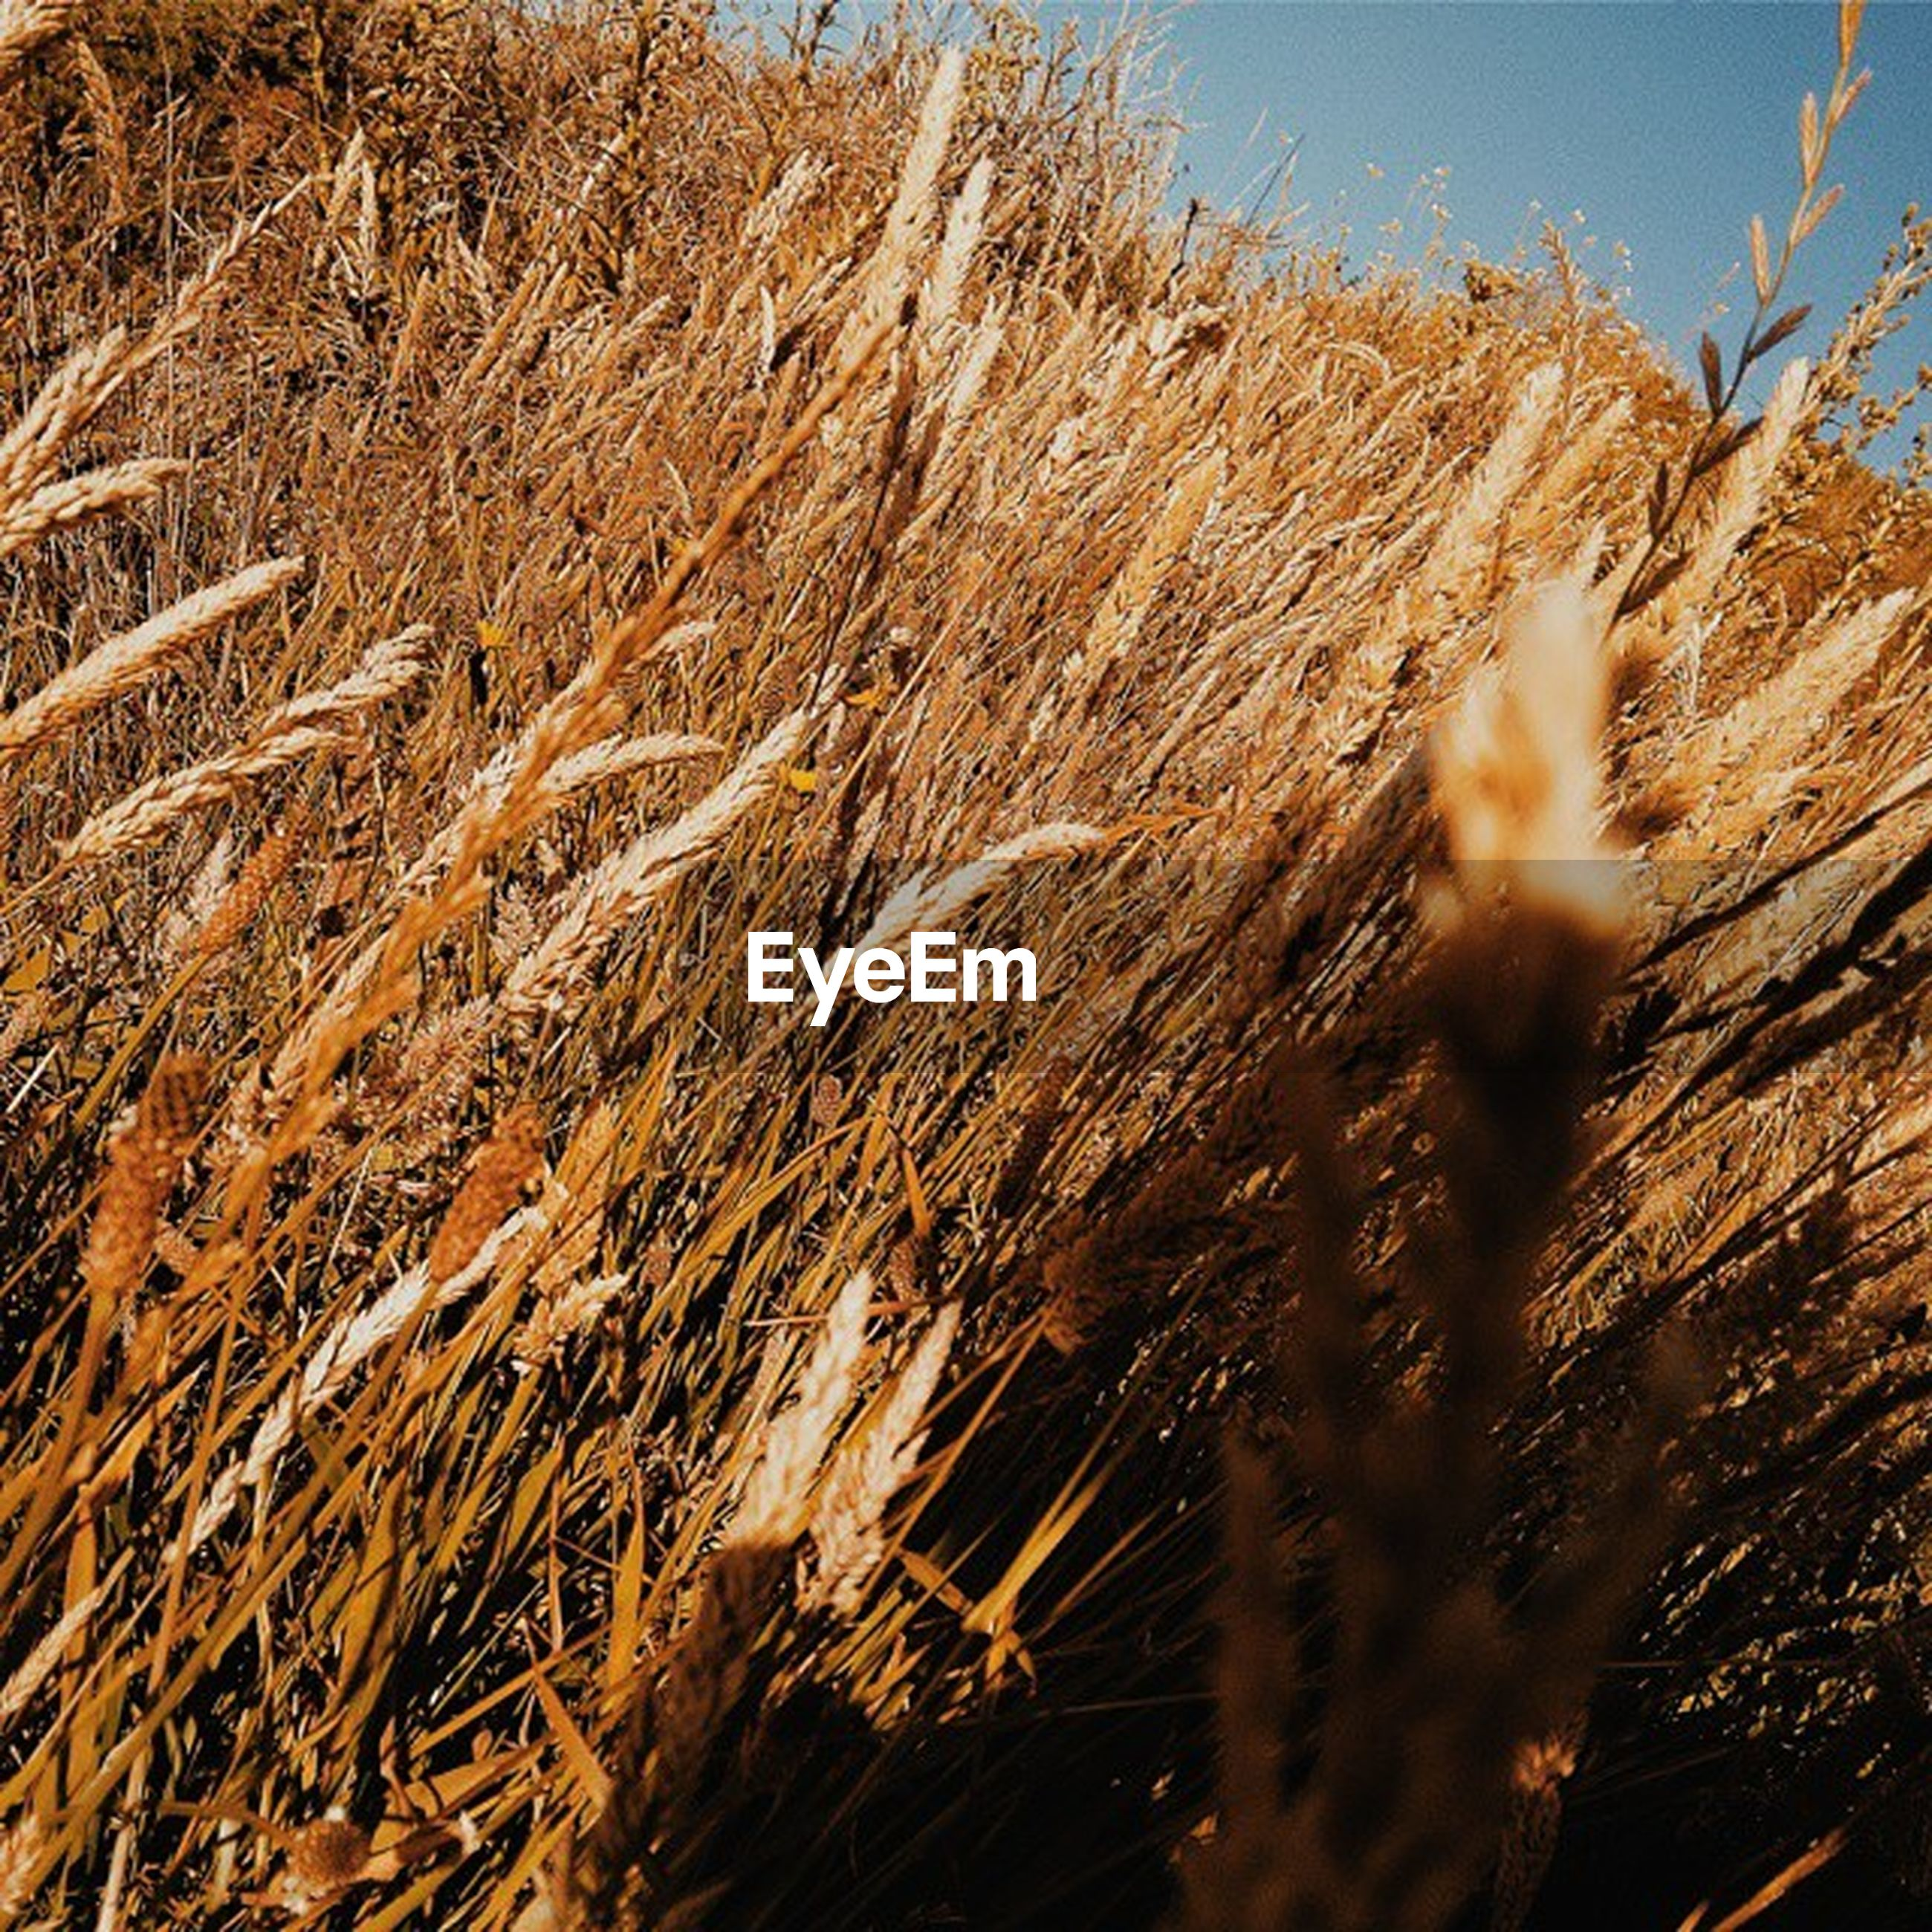 growth, tranquility, plant, nature, grass, field, beauty in nature, sunlight, tranquil scene, sunset, close-up, reed - grass family, outdoors, scenics, sky, dry, no people, growing, day, landscape